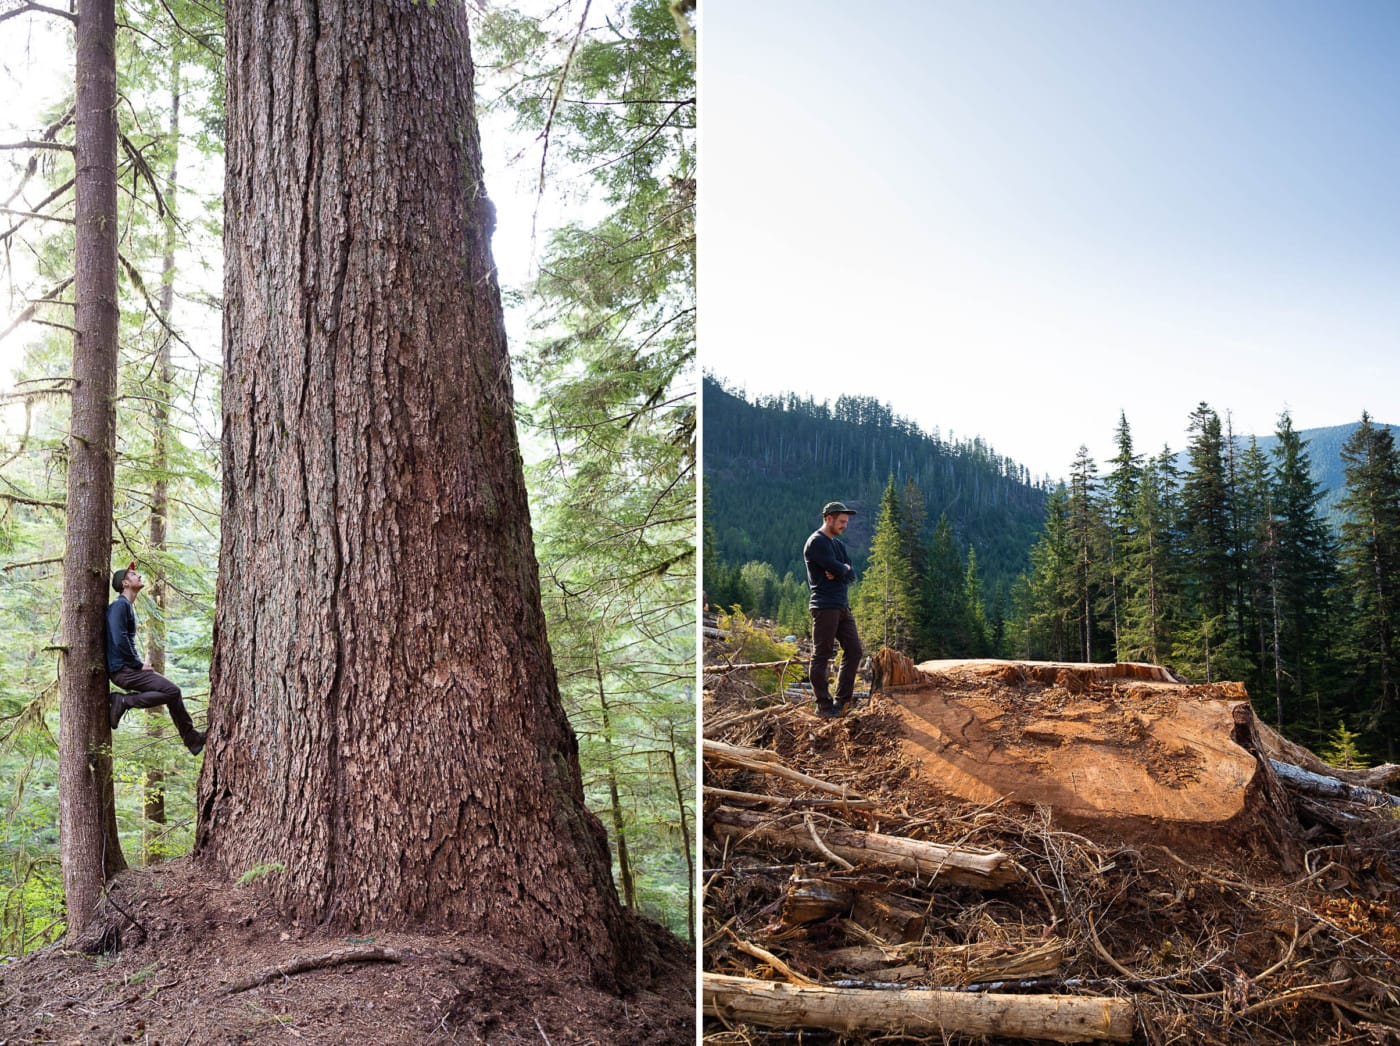 B.C. 'shouldn't have approved' plan that failed to protect Nahmint old-growth forests: watchdog